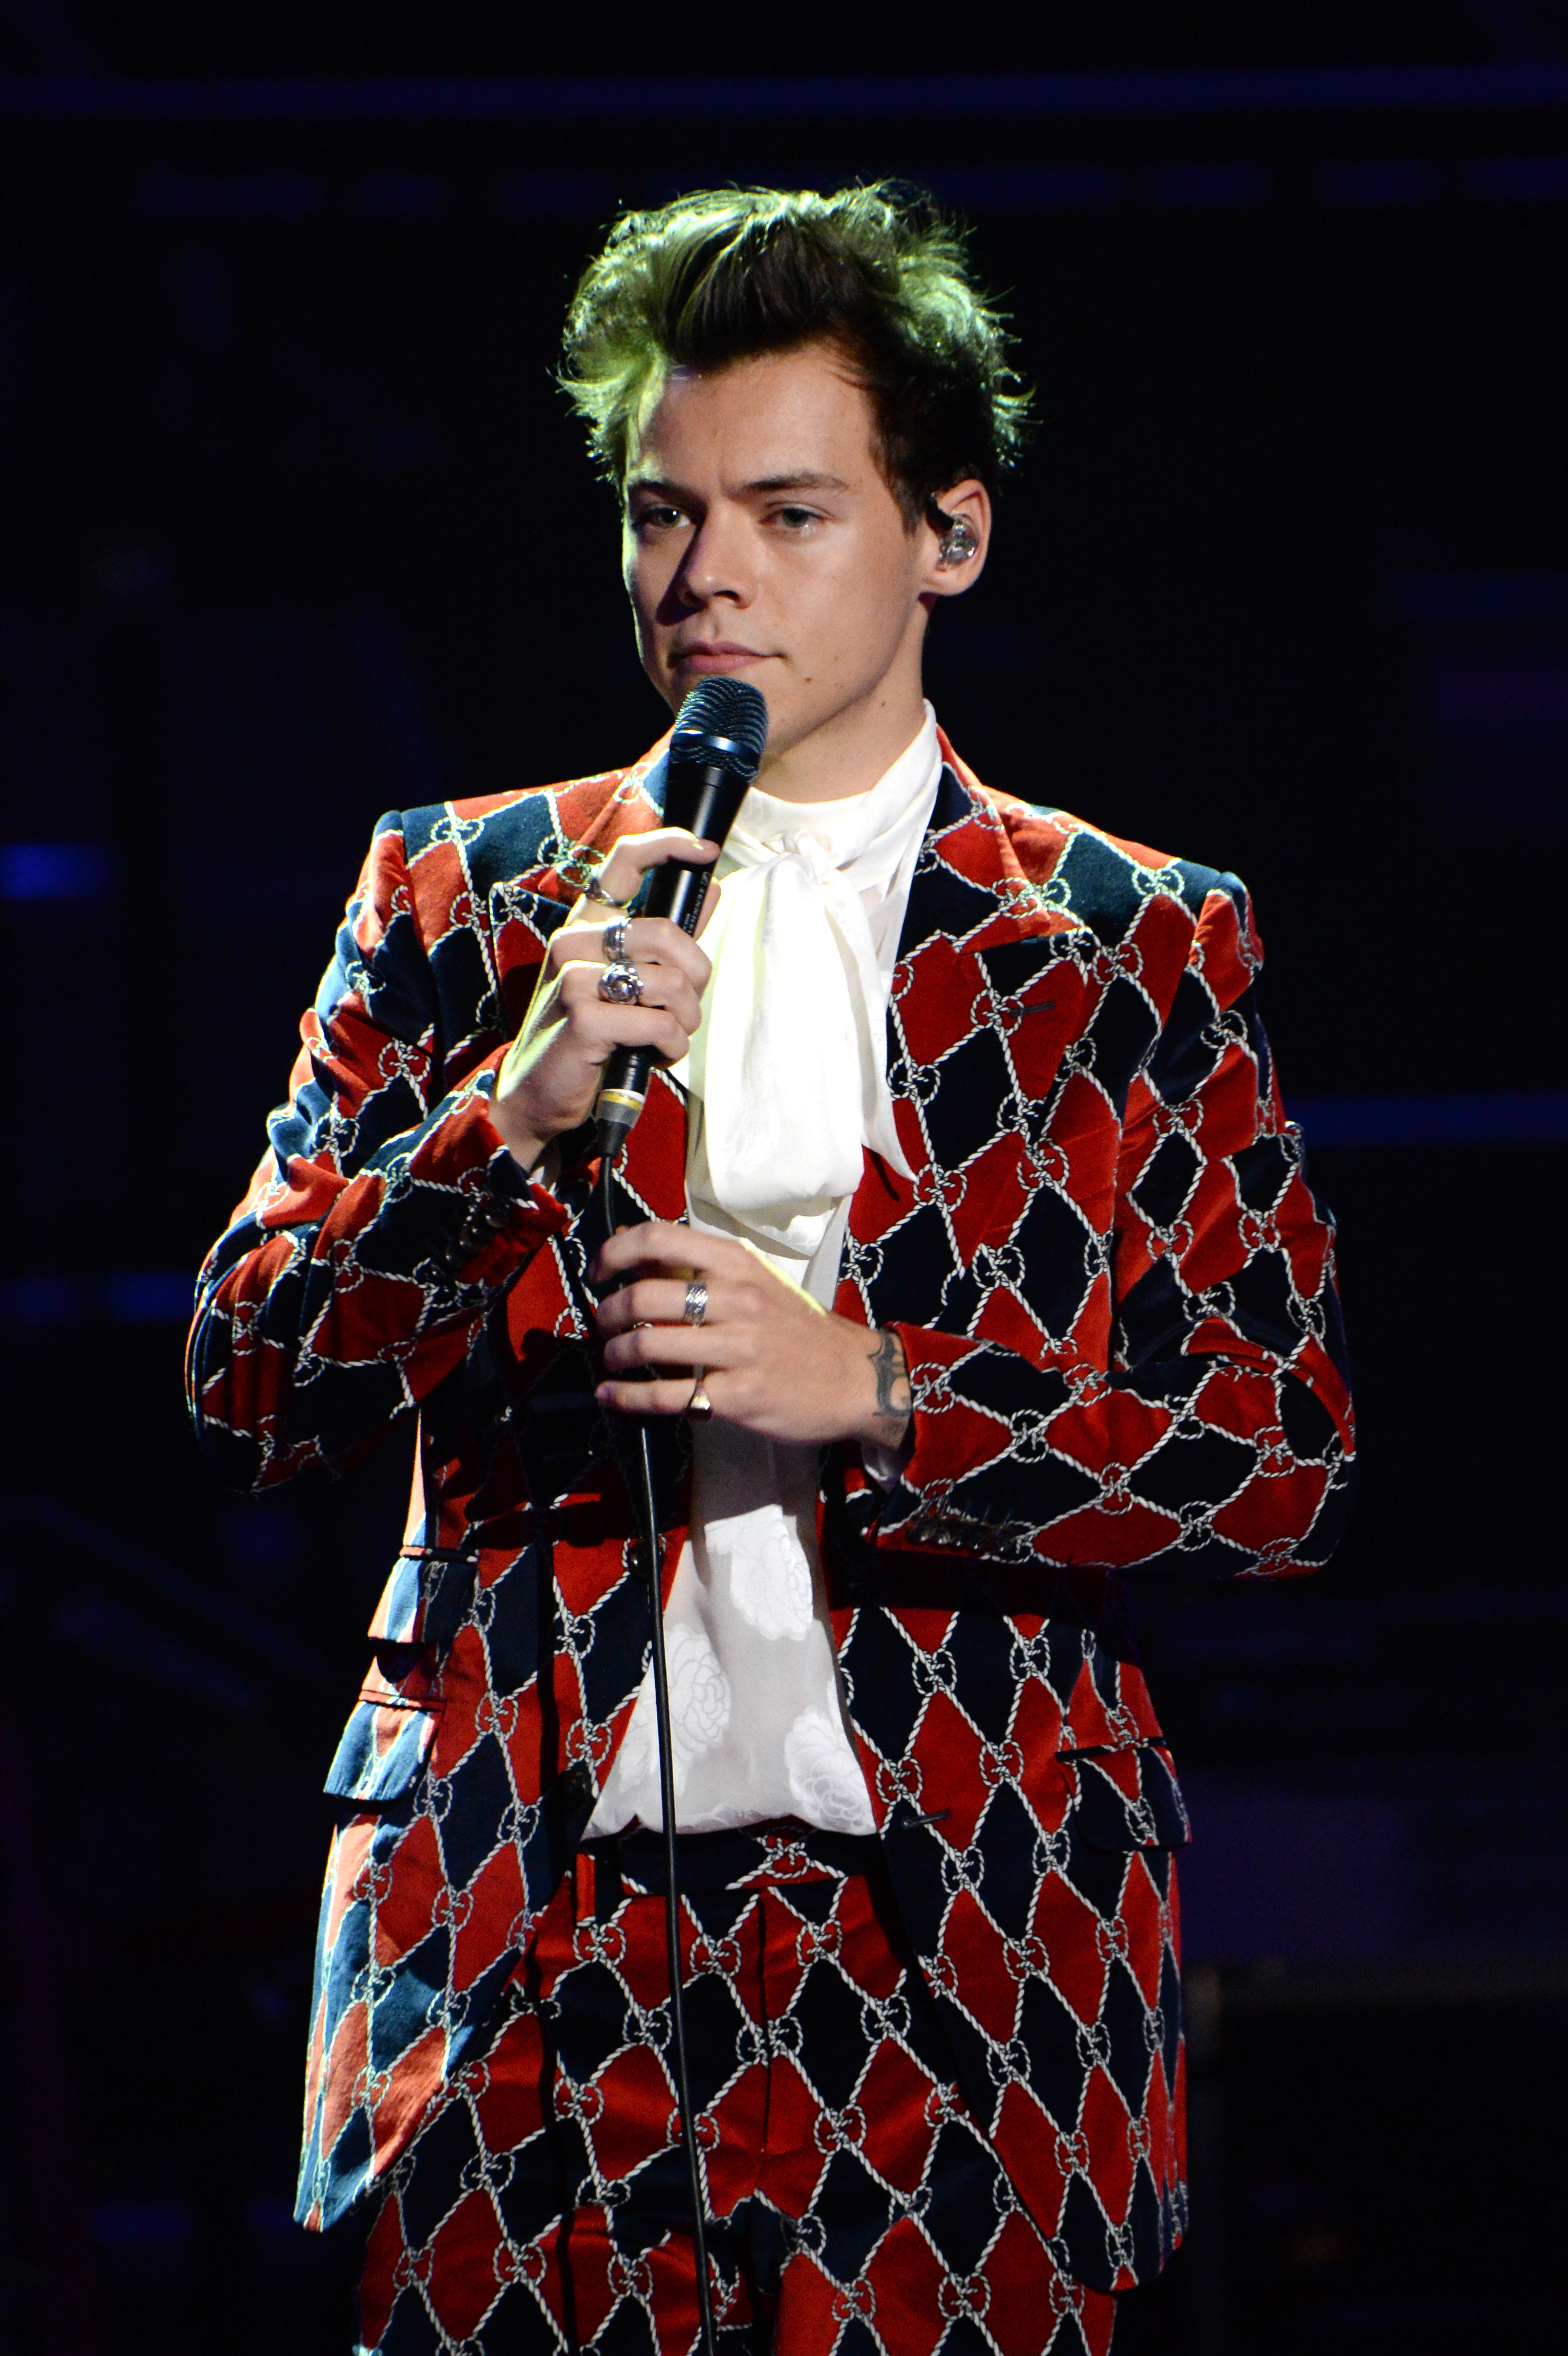 d61b9cc89be86 Harry Styles Replaces Katy Perry At The Victoria s Secret Fashion Show